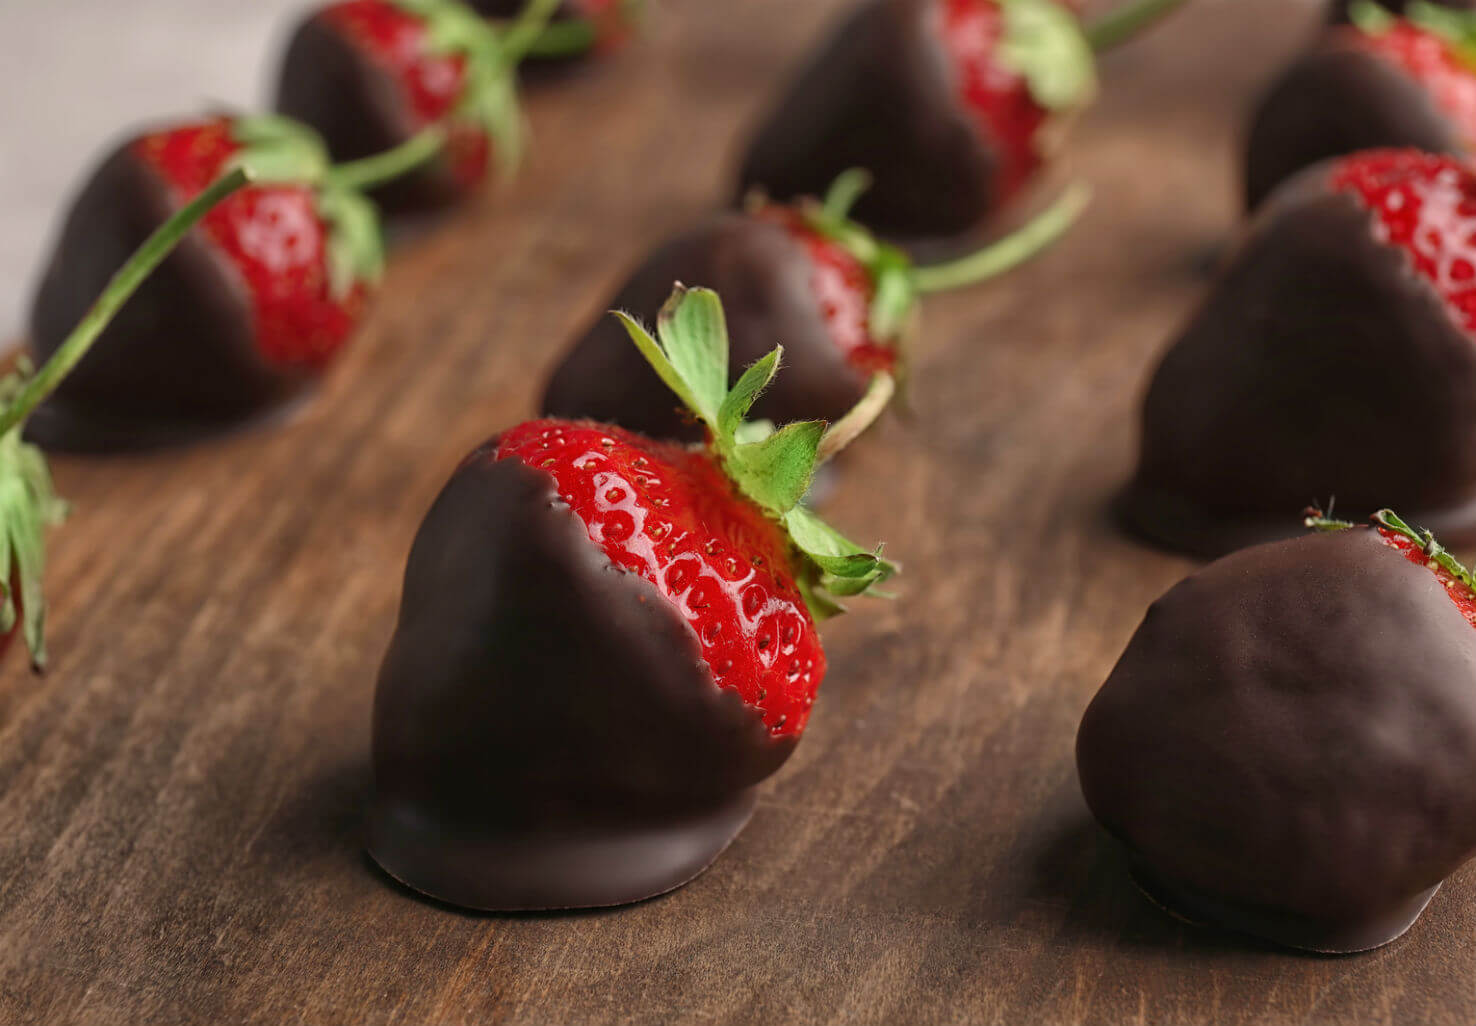 Rows of chocolate-covered strawberries